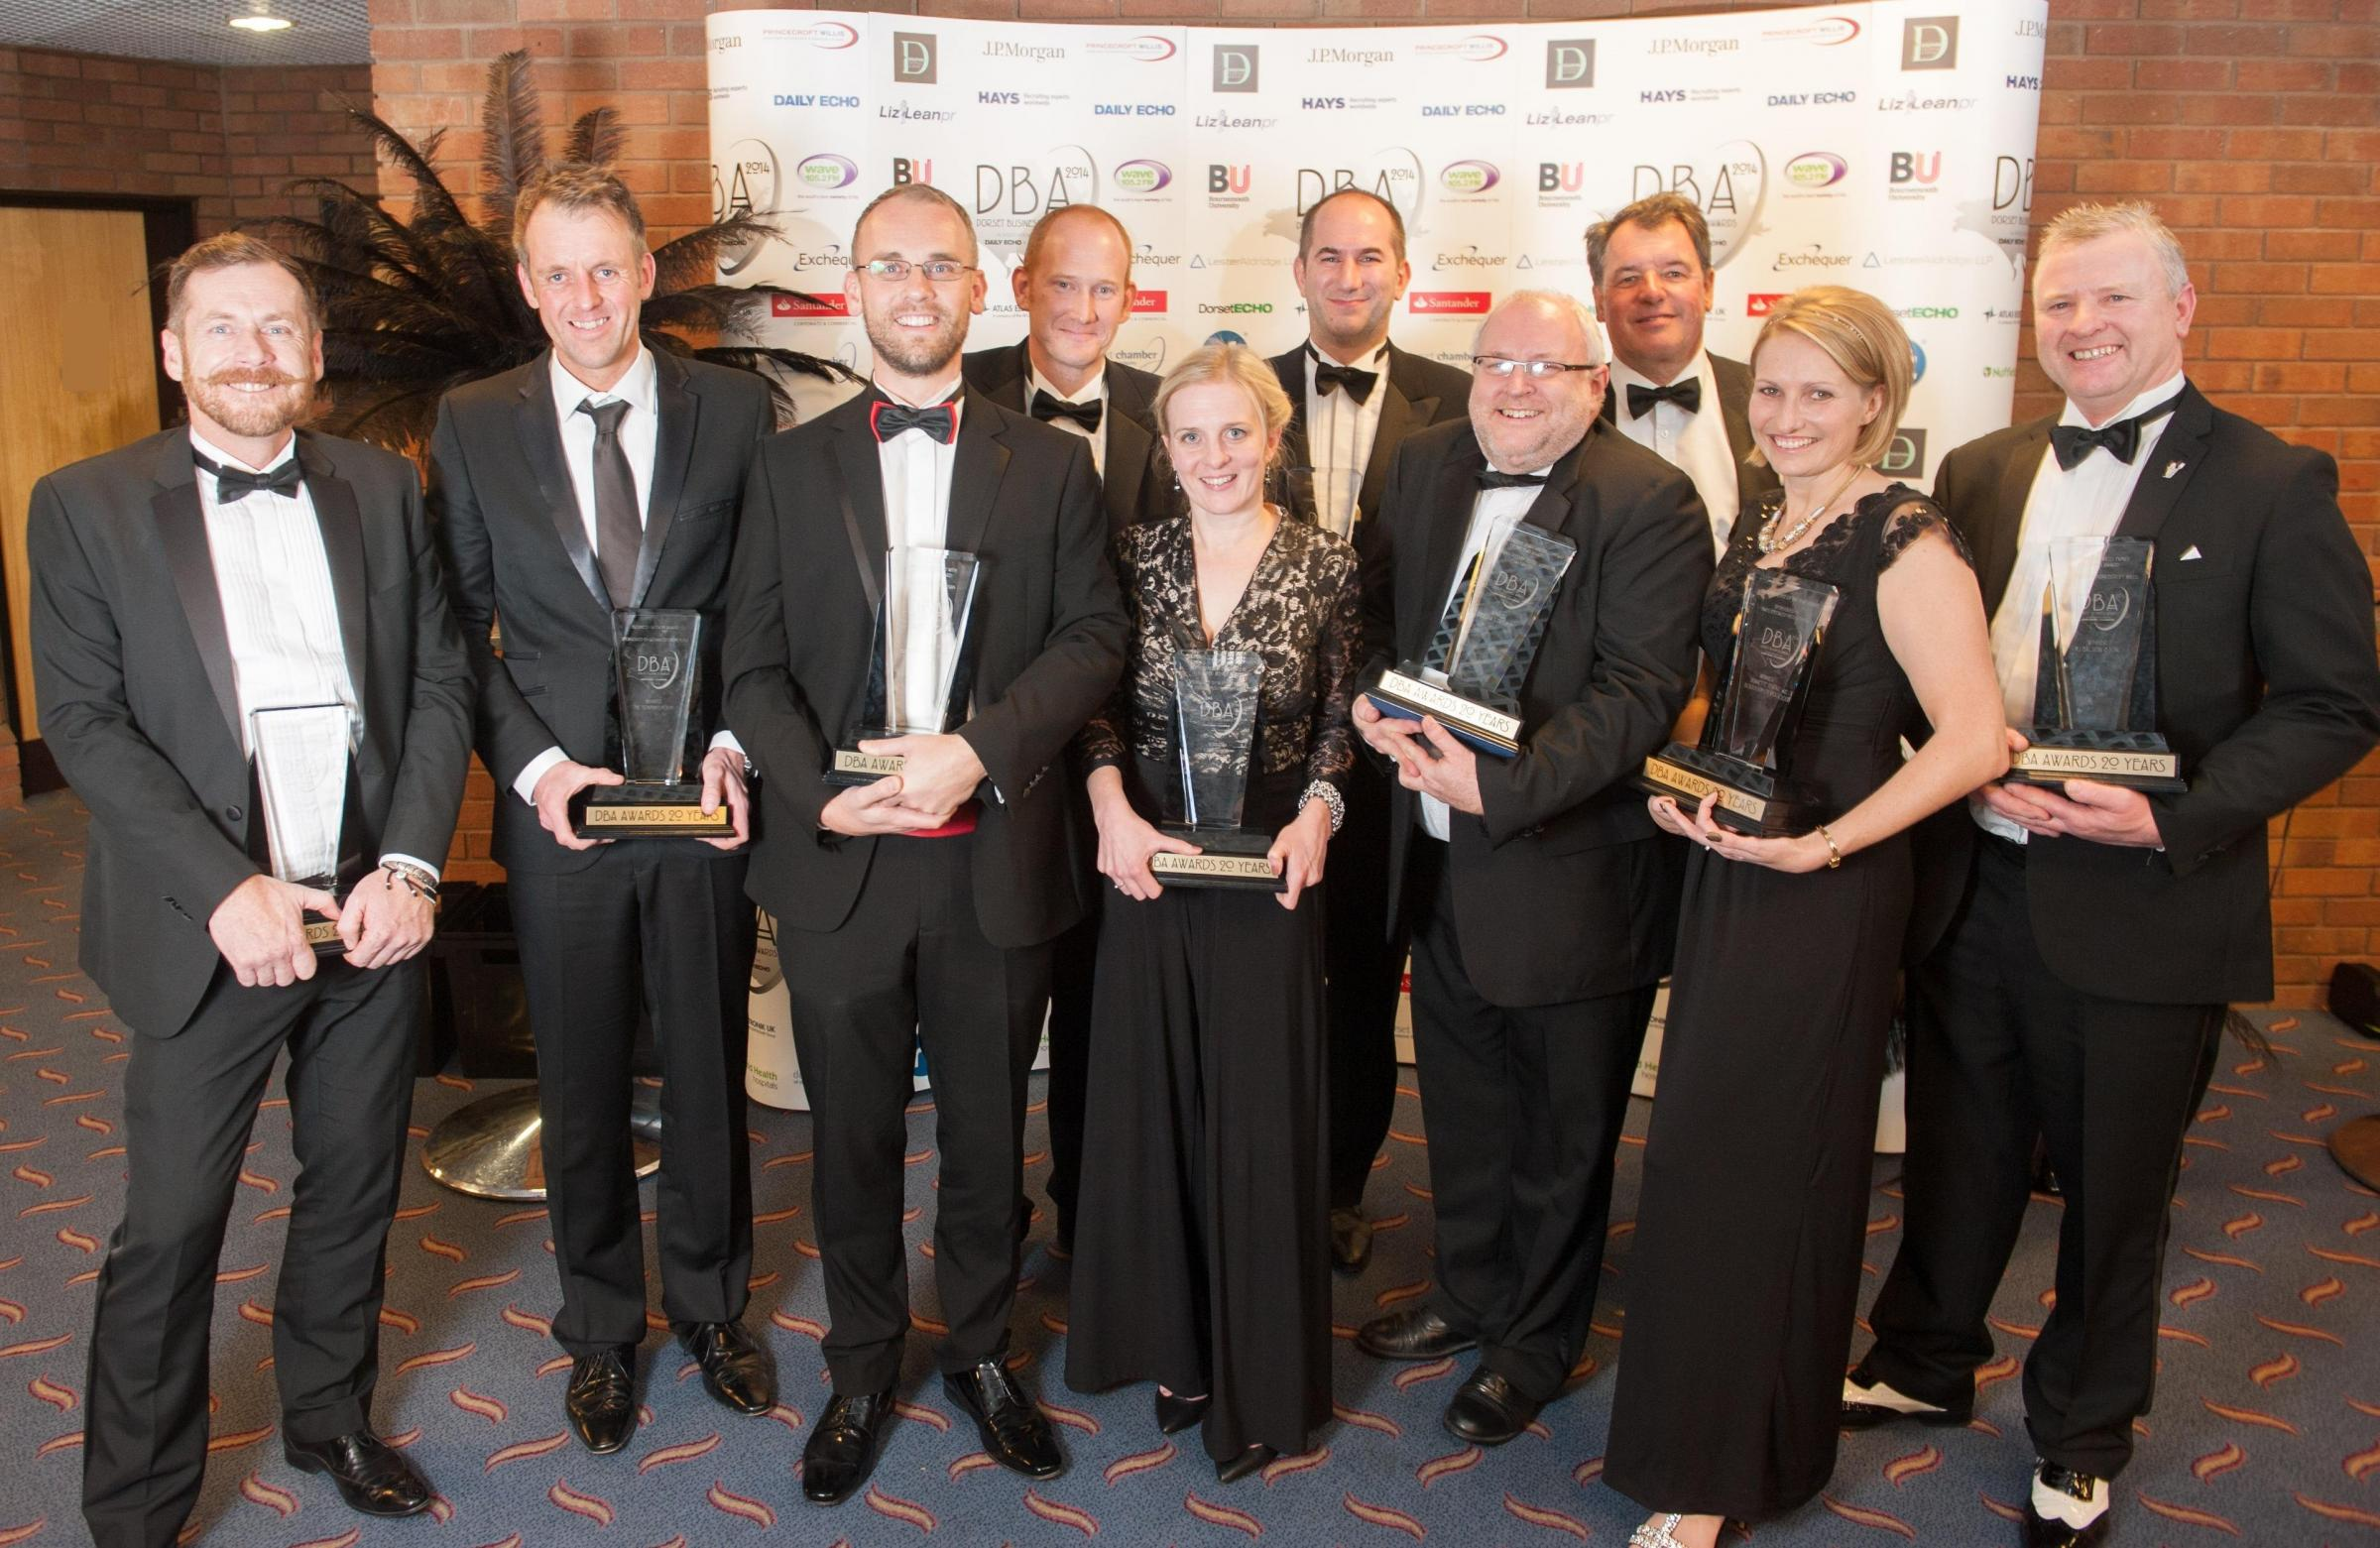 Dorset Business Awards 2015 moves to the BIC as popularity grows